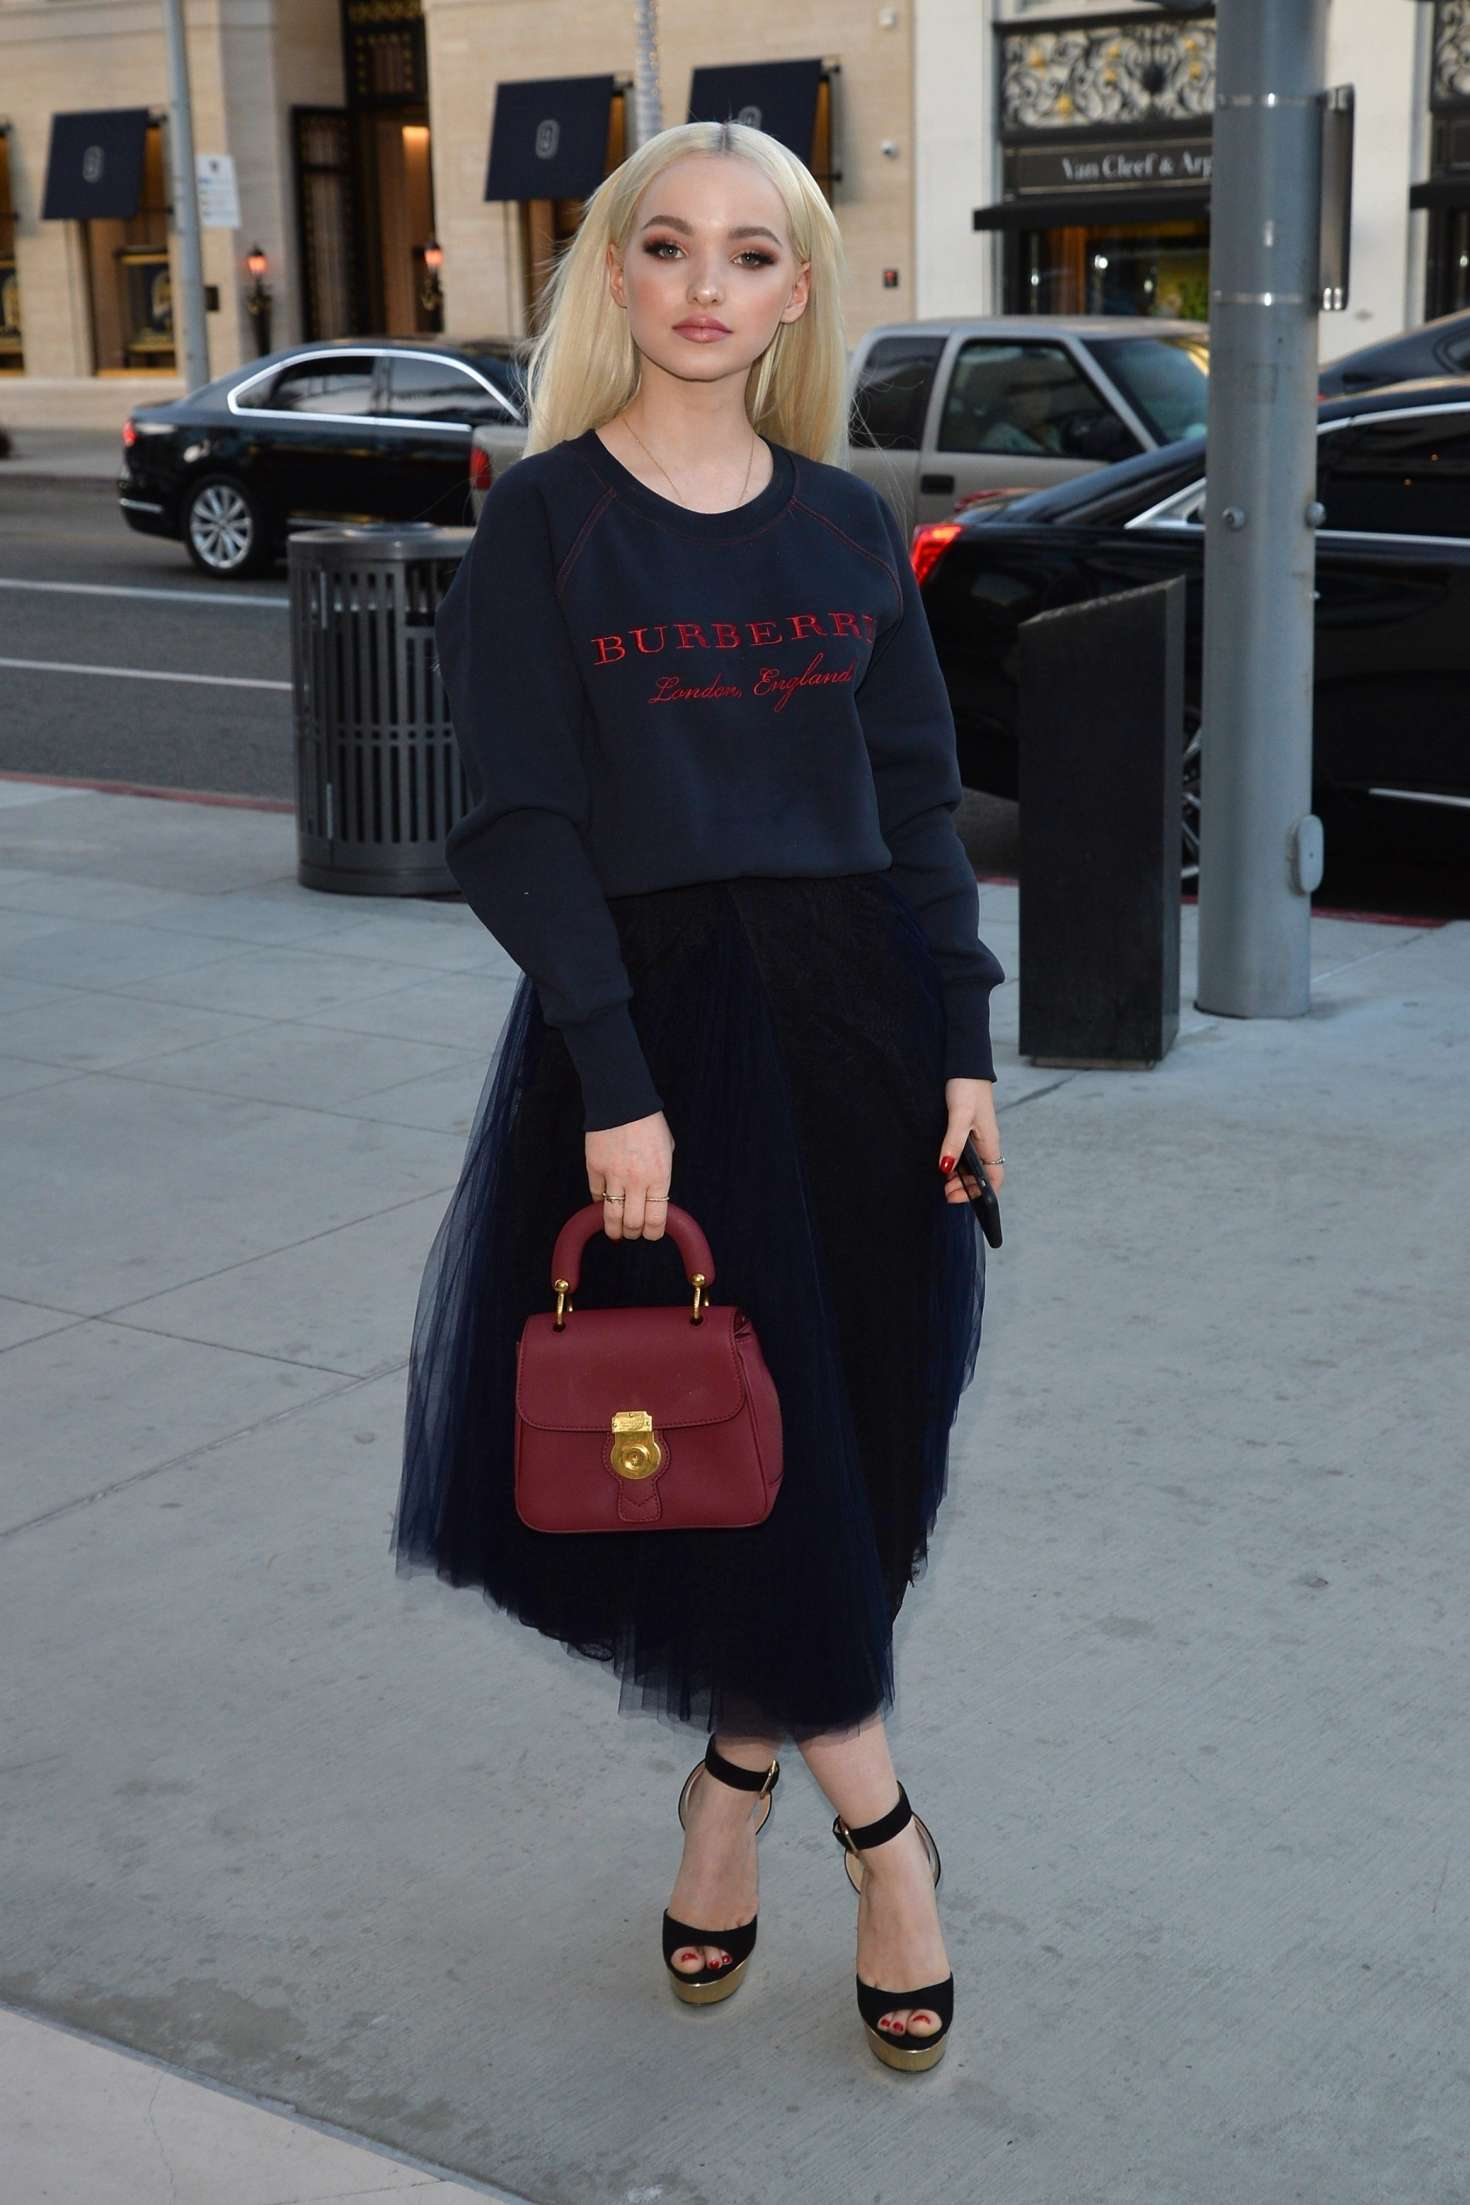 Dove Cameron 2018 : Dove Cameron: Arrives at a party at the Rodeo Drive Burberry store -08